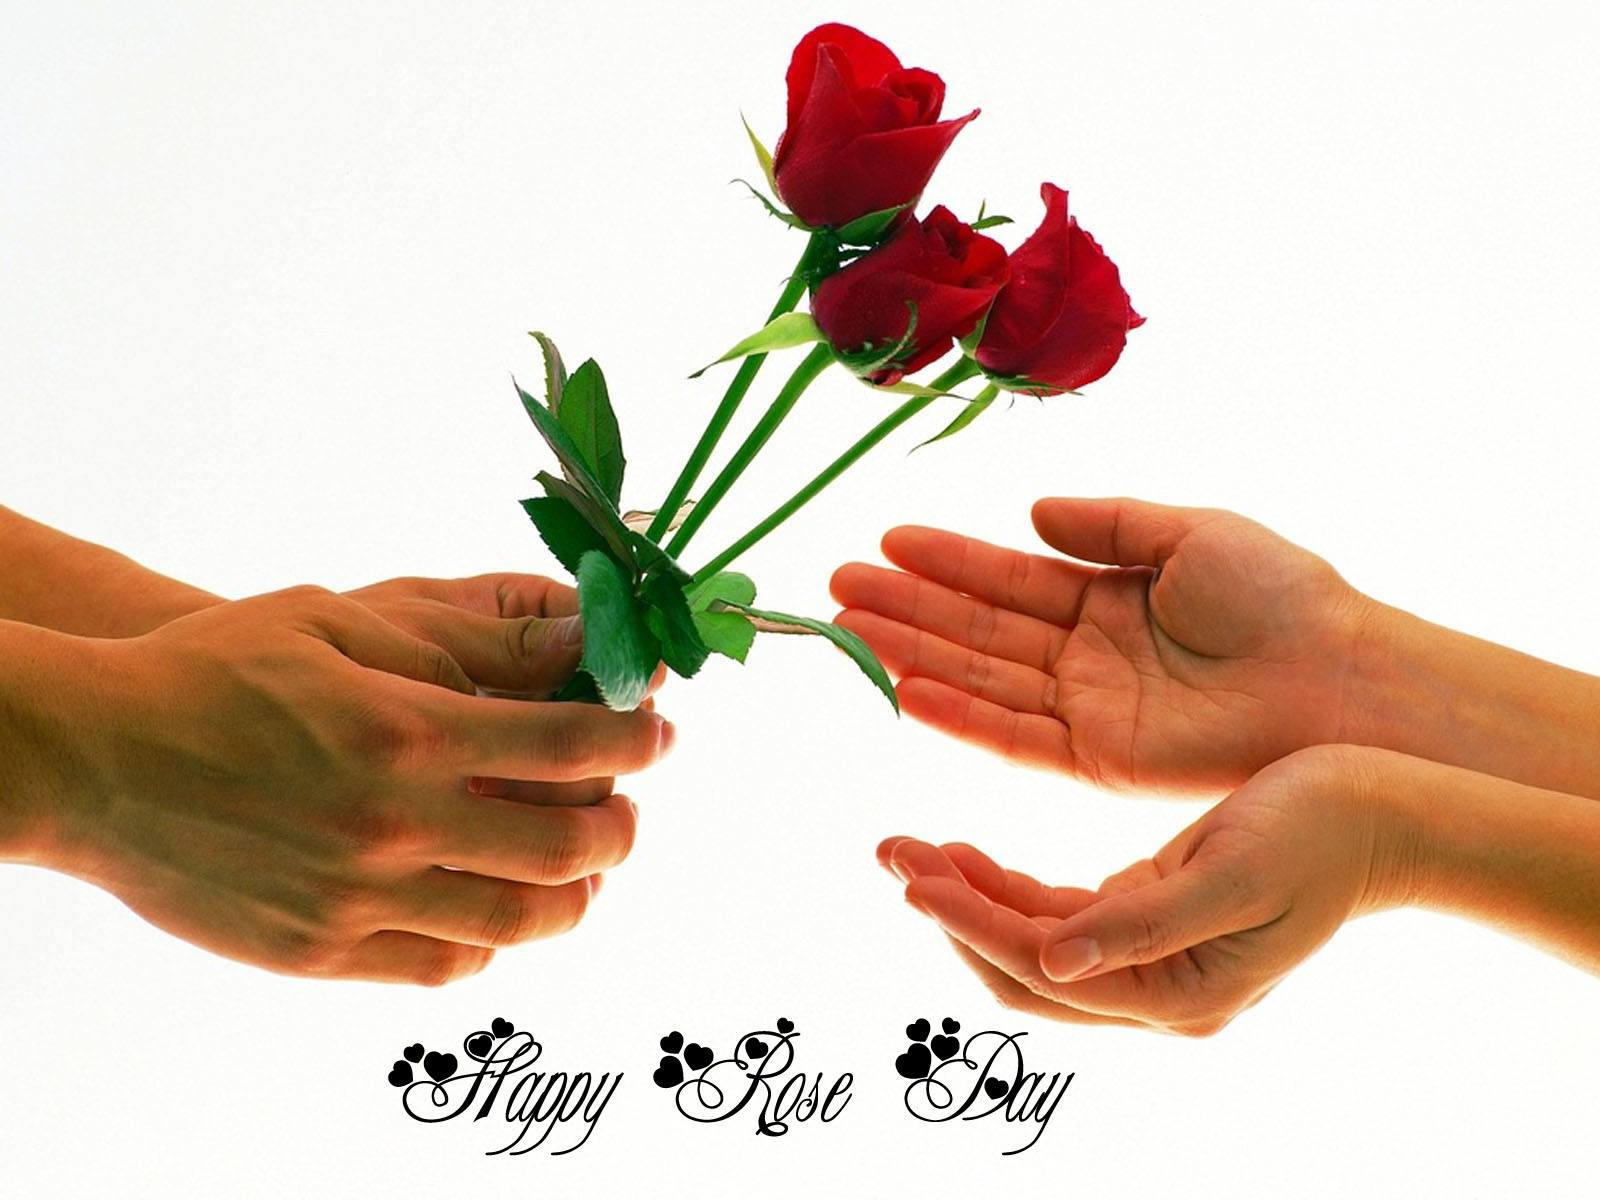 Highly Romantic Rose Day SMS, Wishes For Girlfriend/Wife